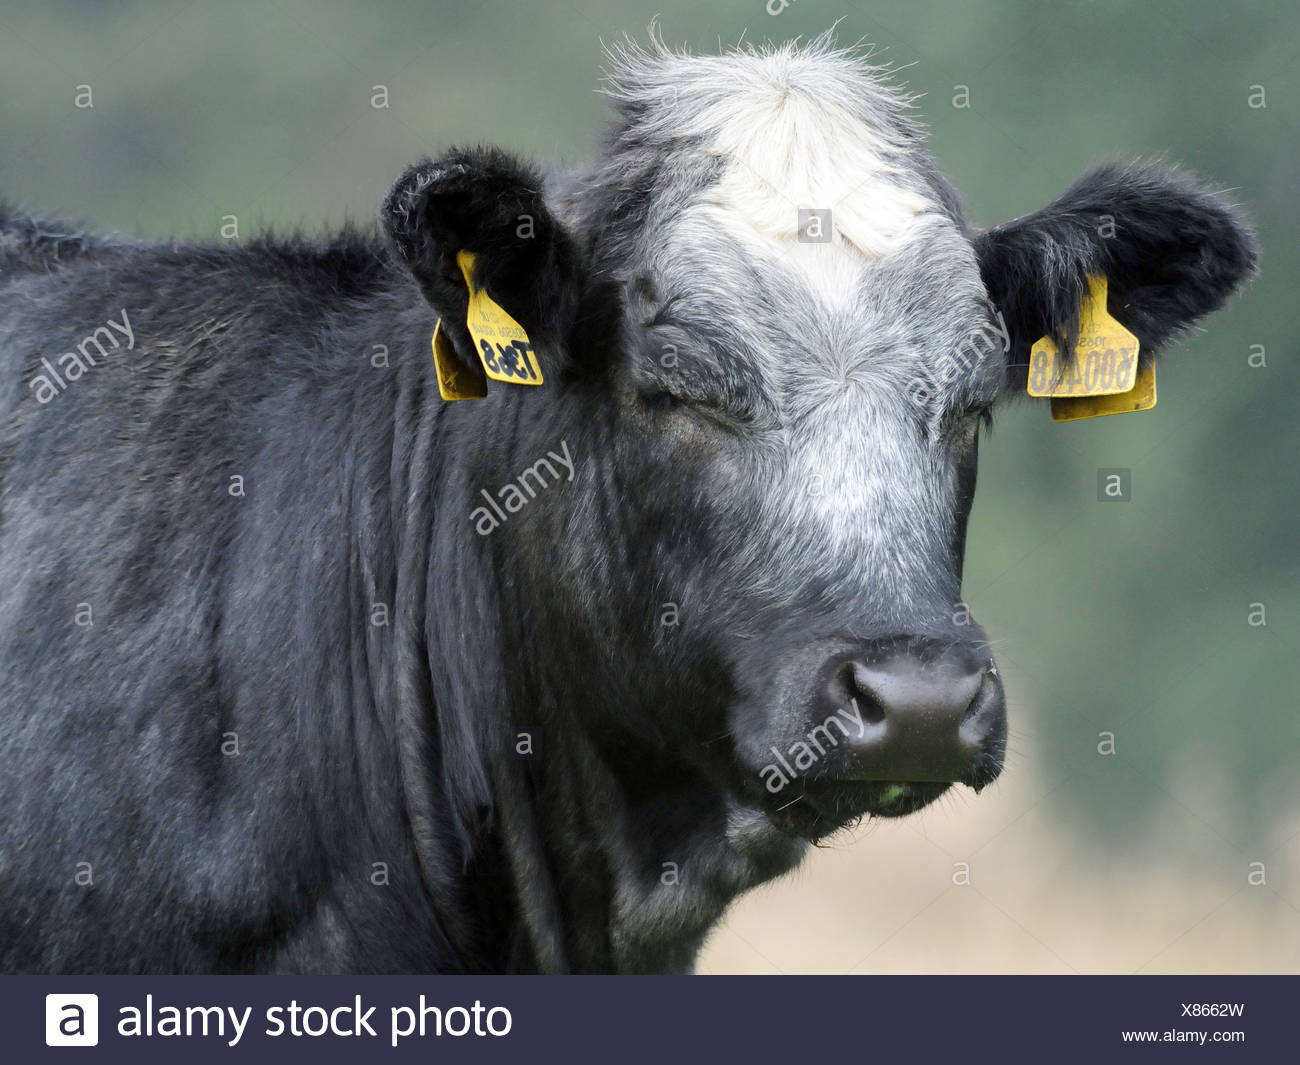 A black and grey cow with its eyes closed - Stock Image